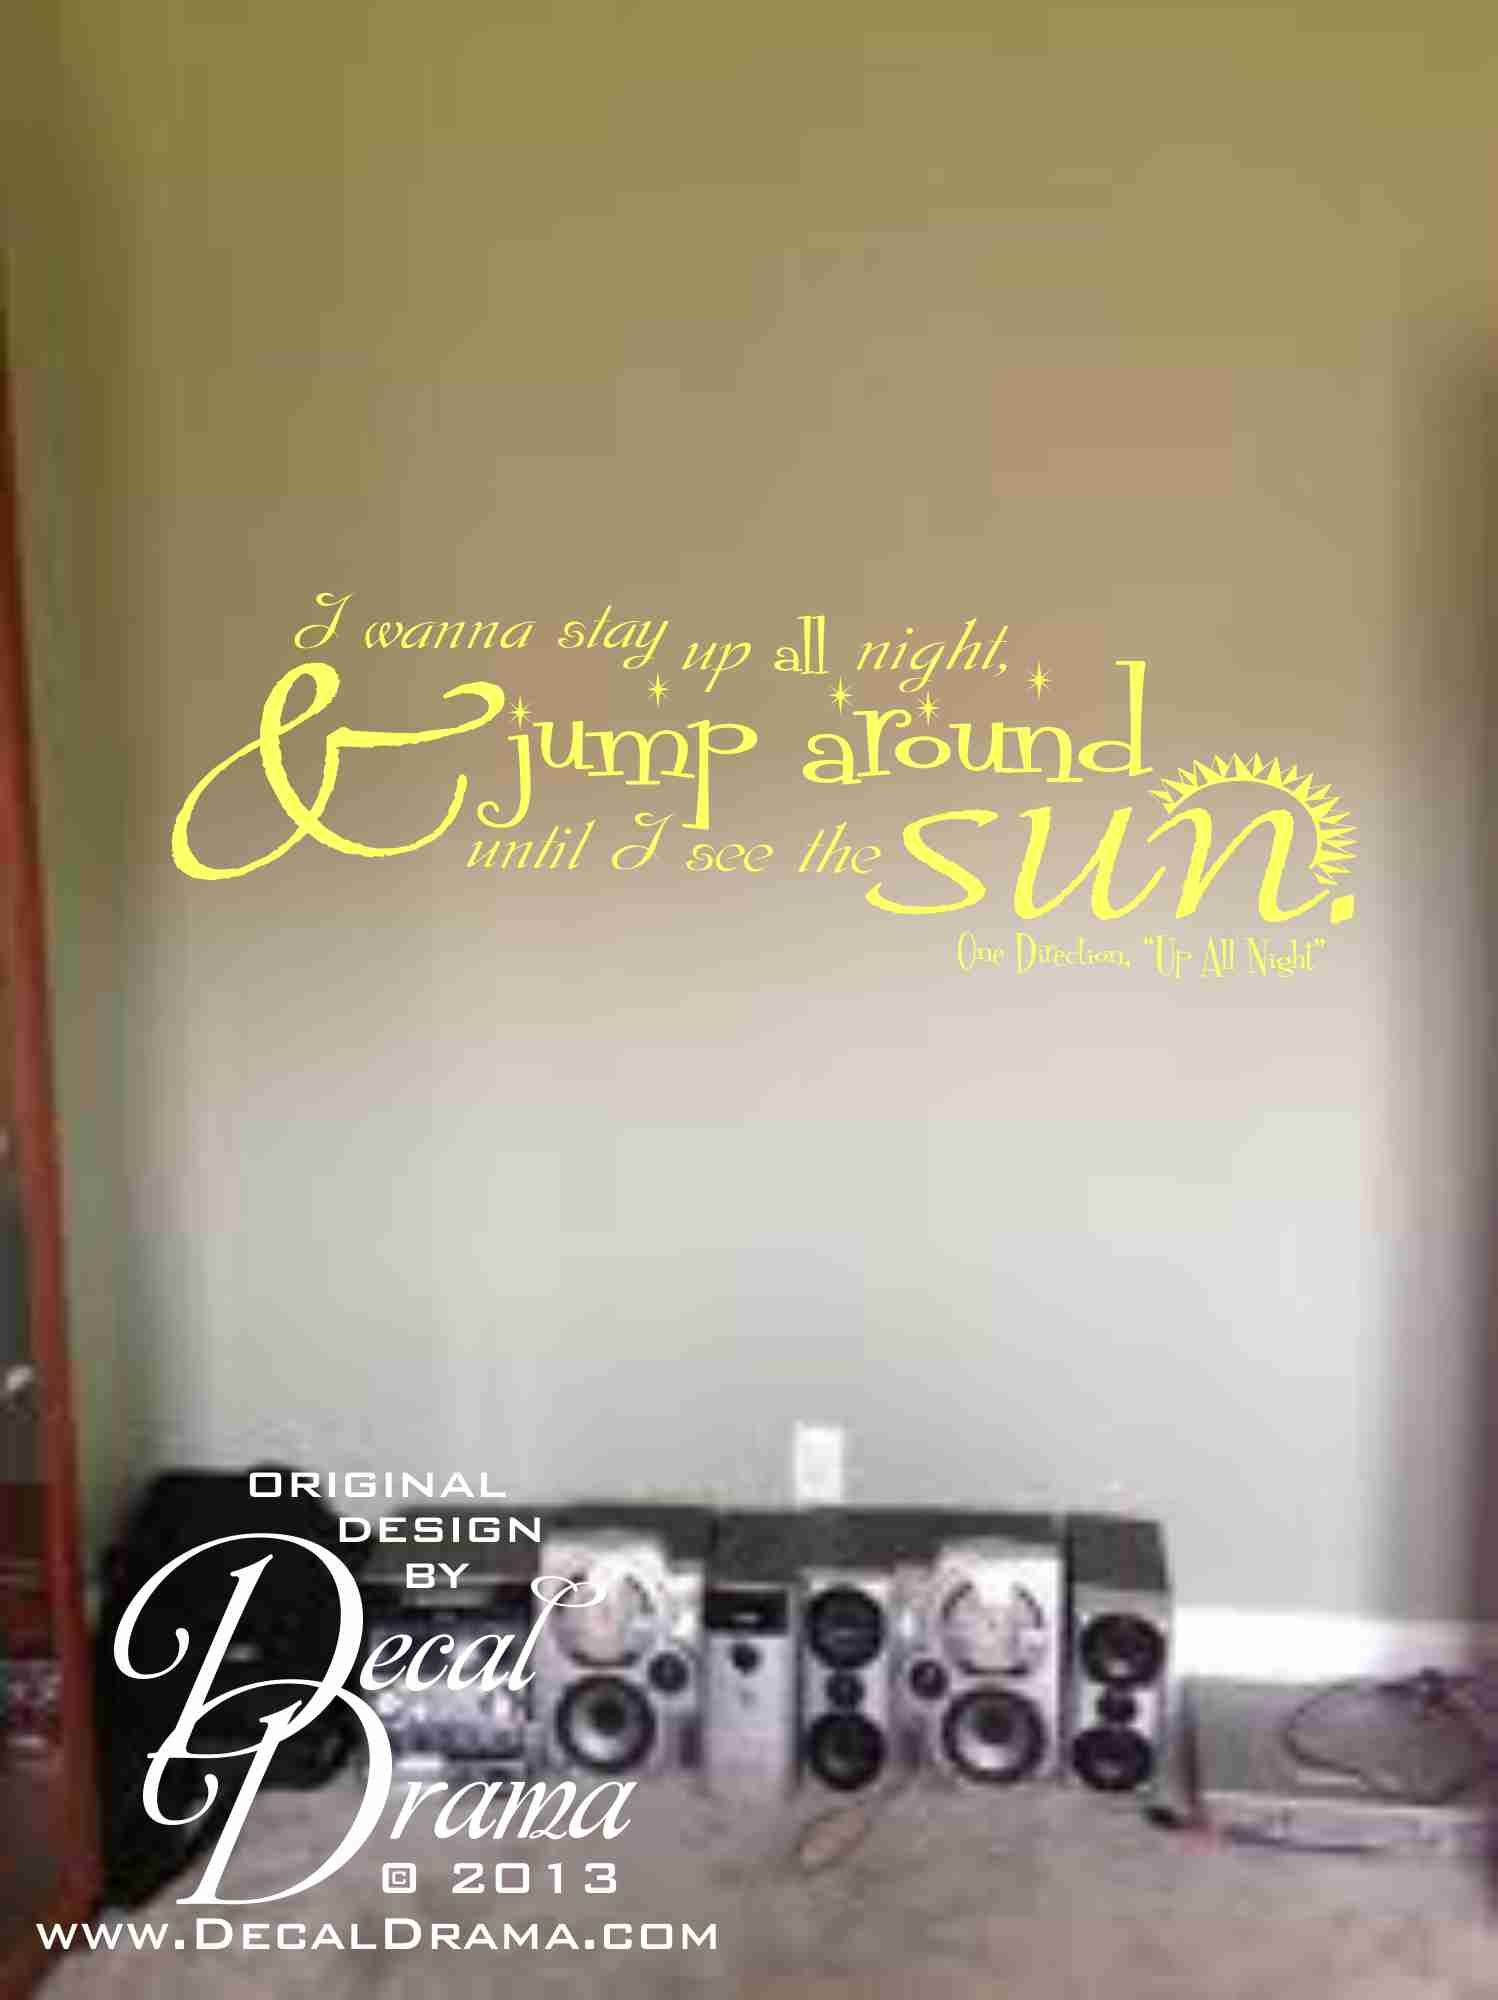 """I Wanna STAY UP All Night and JUMP AROUND until I See the SUN; One Direction, """"Up All Night"""" lyrics wall decal: approximately 36""""w x 12""""h (91cm x 31cm)"""